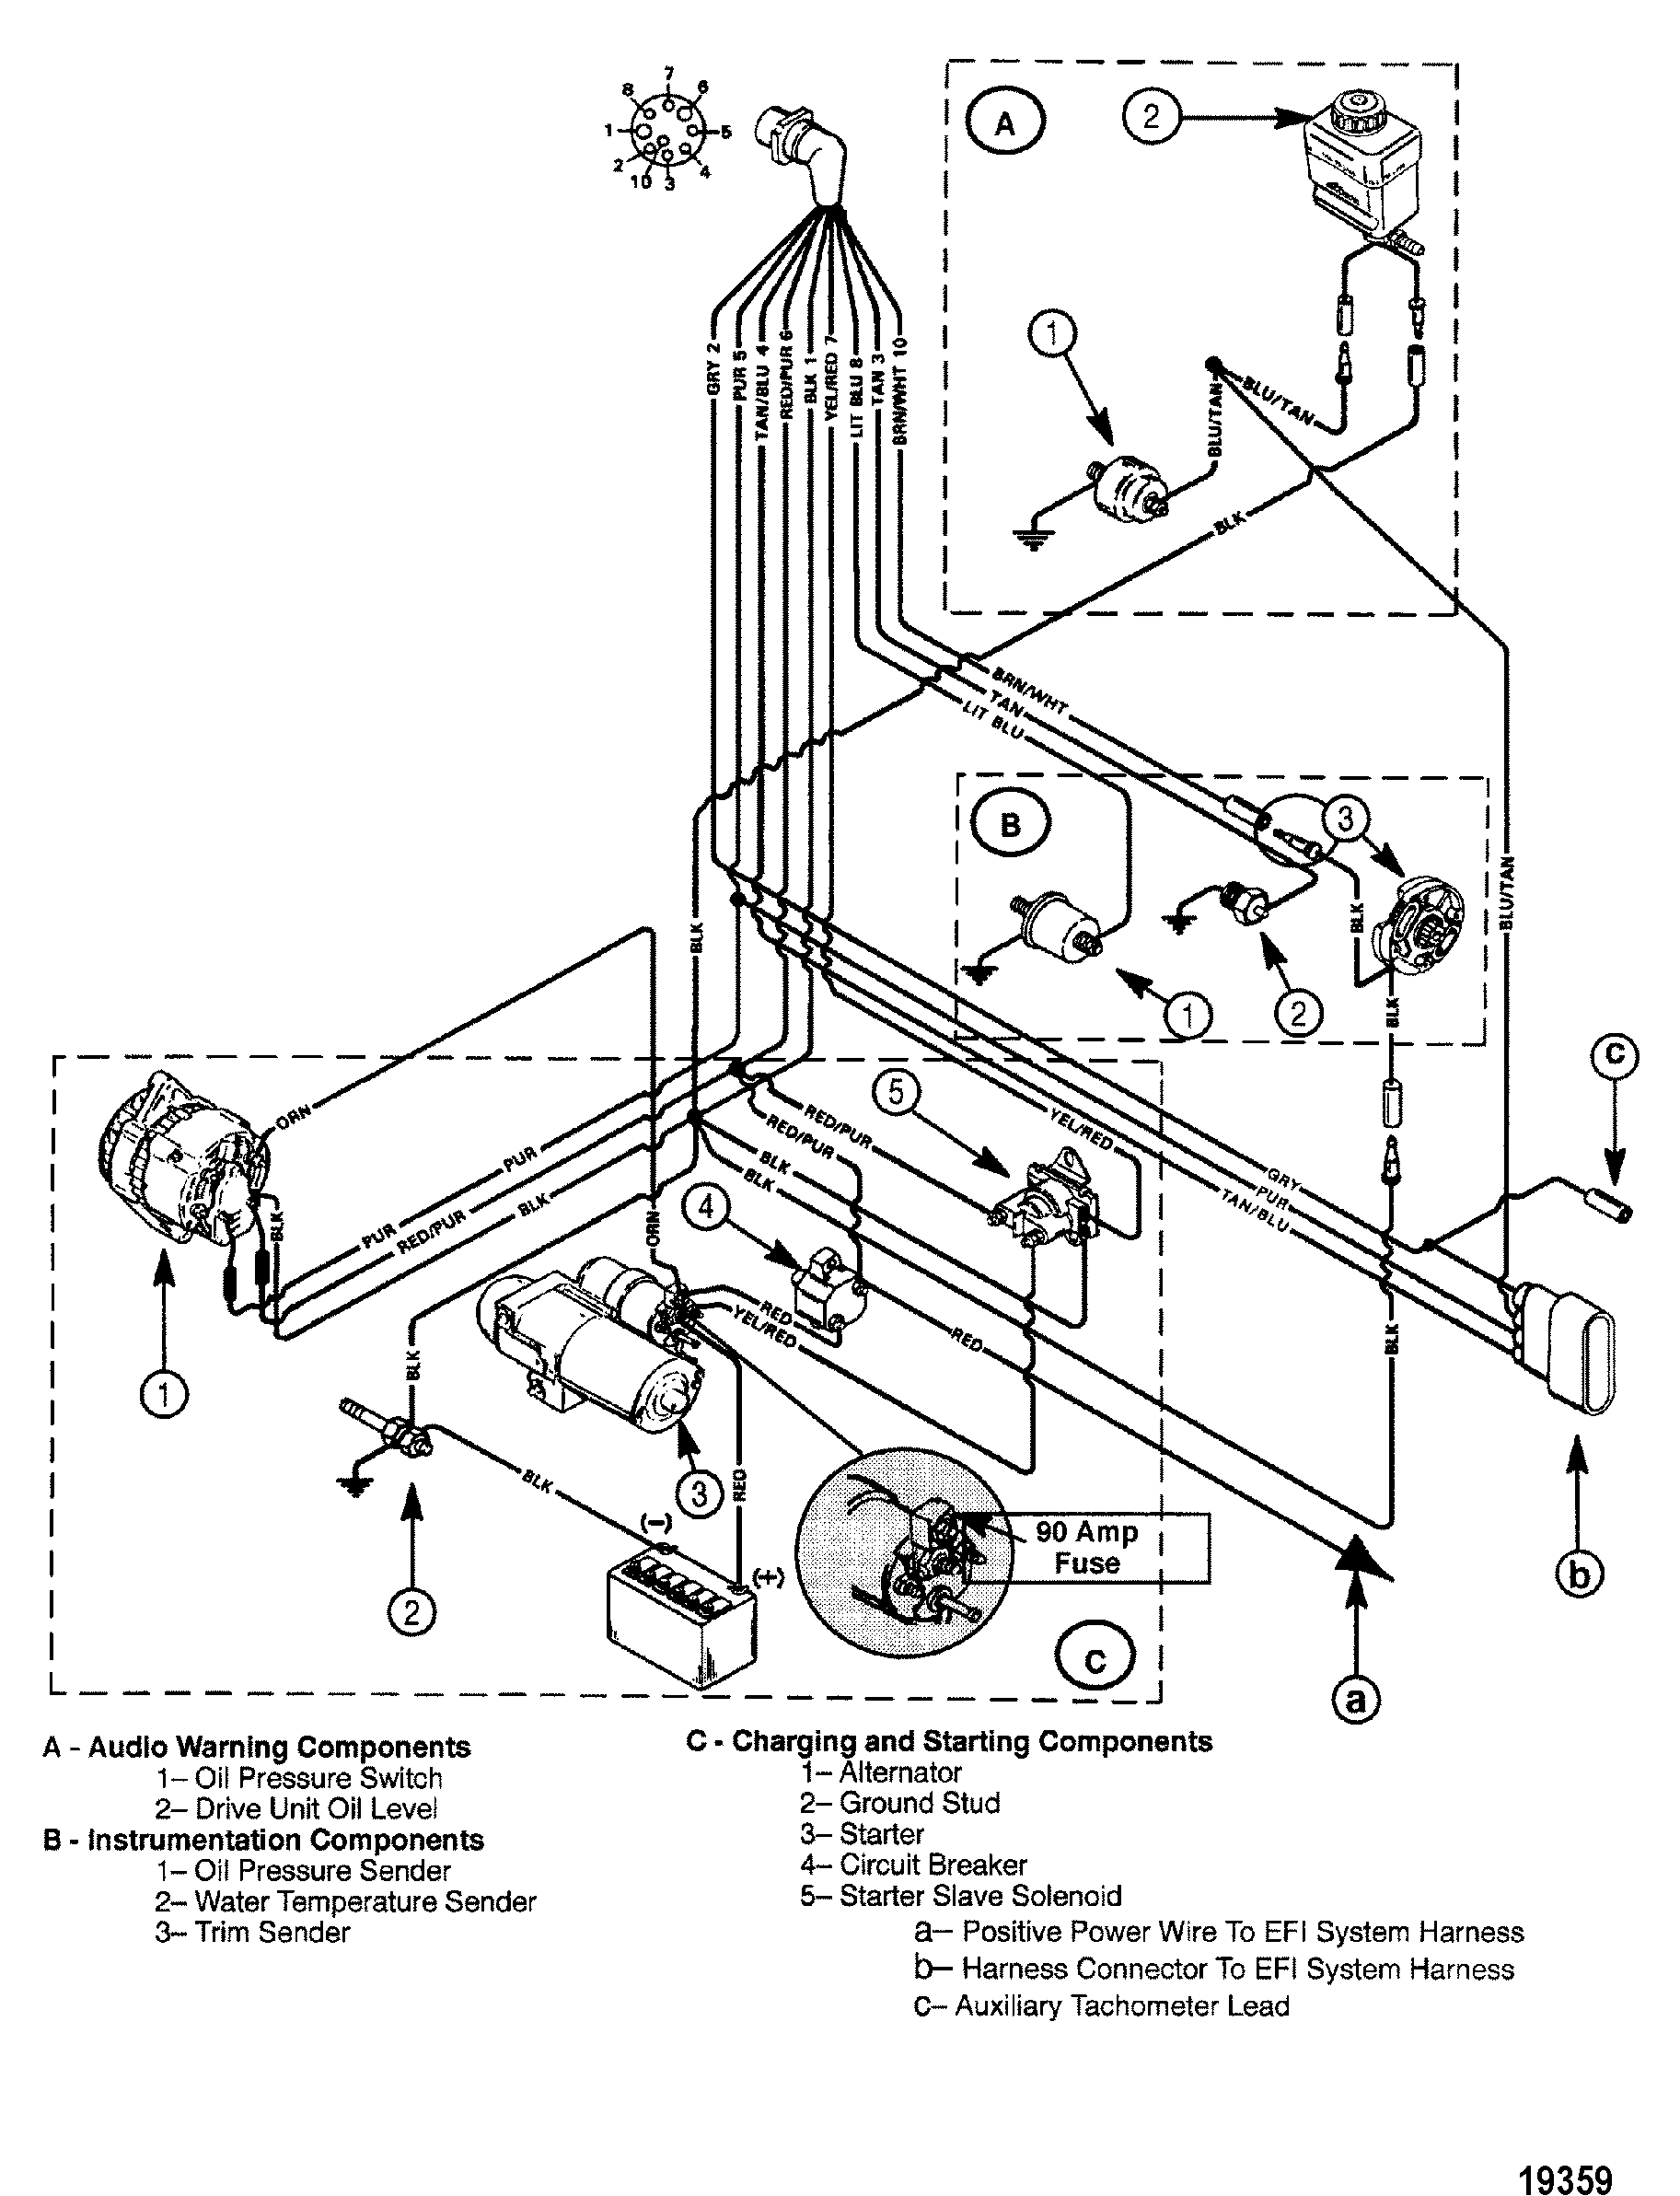 Omc 5 0 Engine Diagram